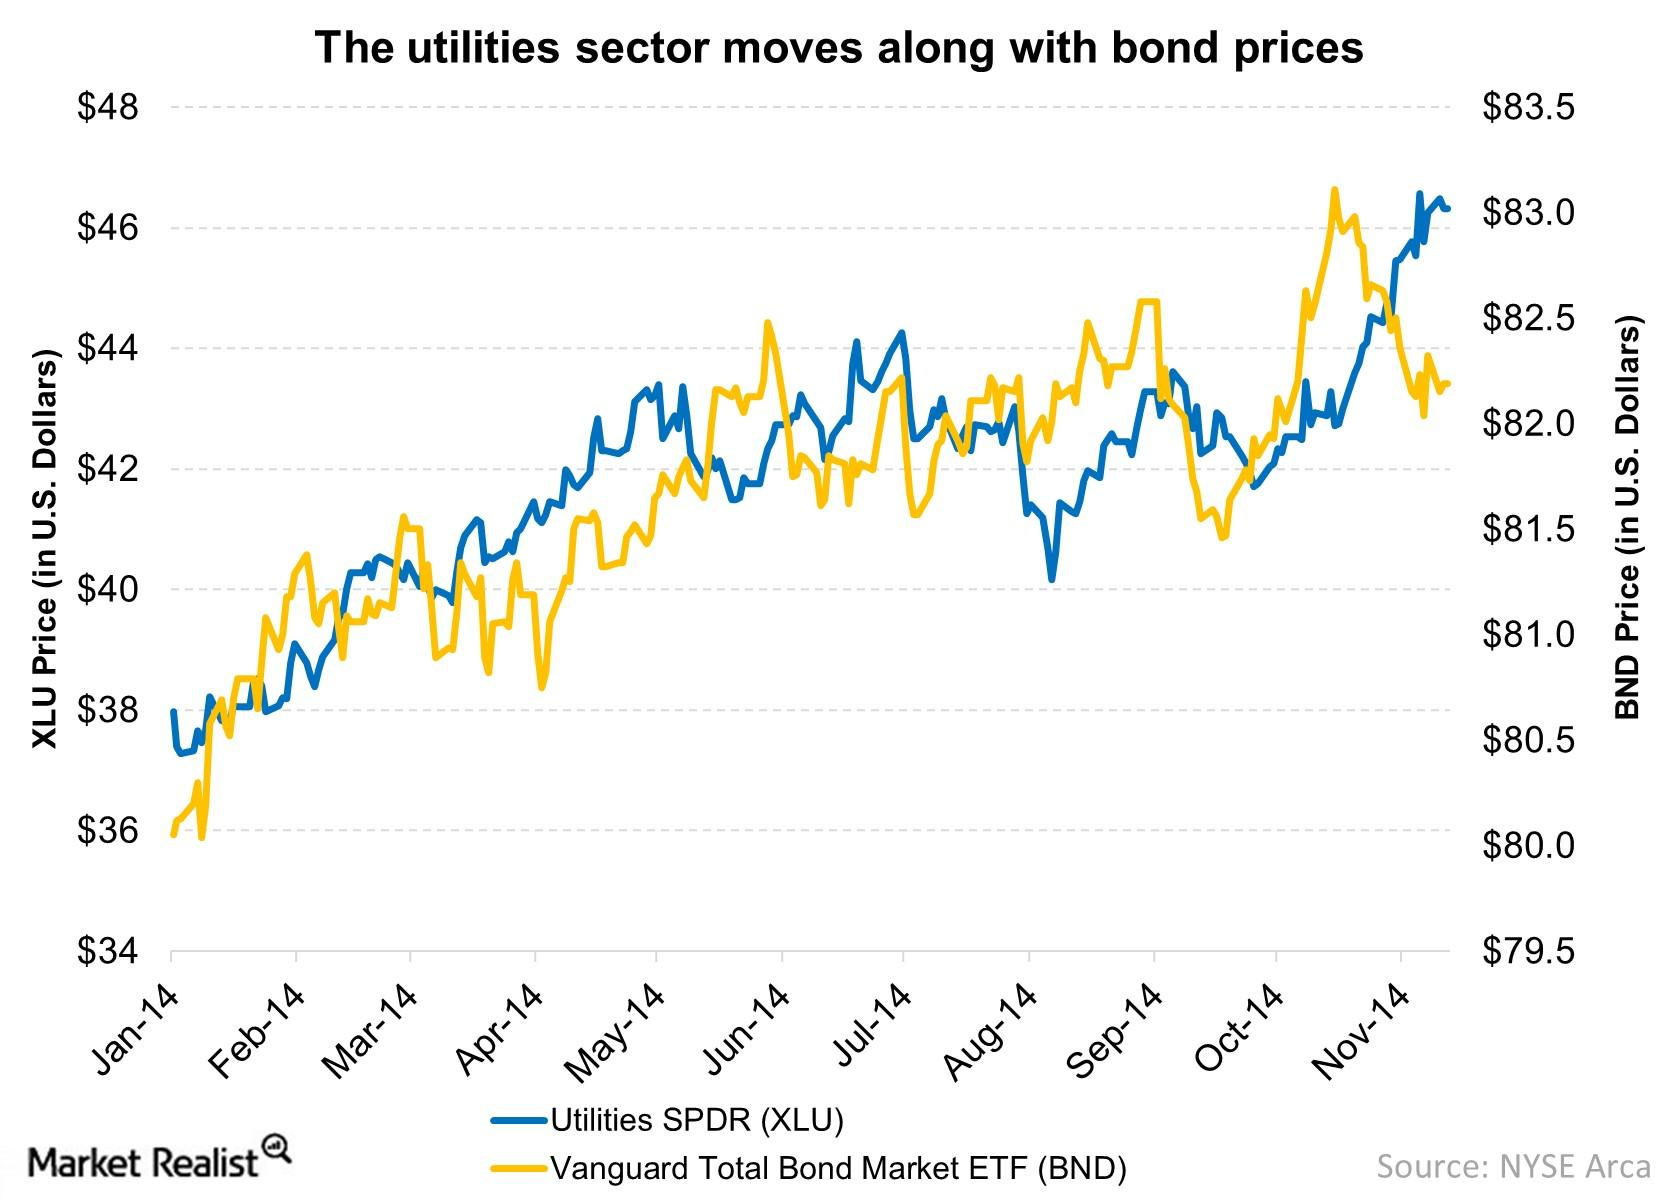 The utilities sector gives its investors bond-like exposure